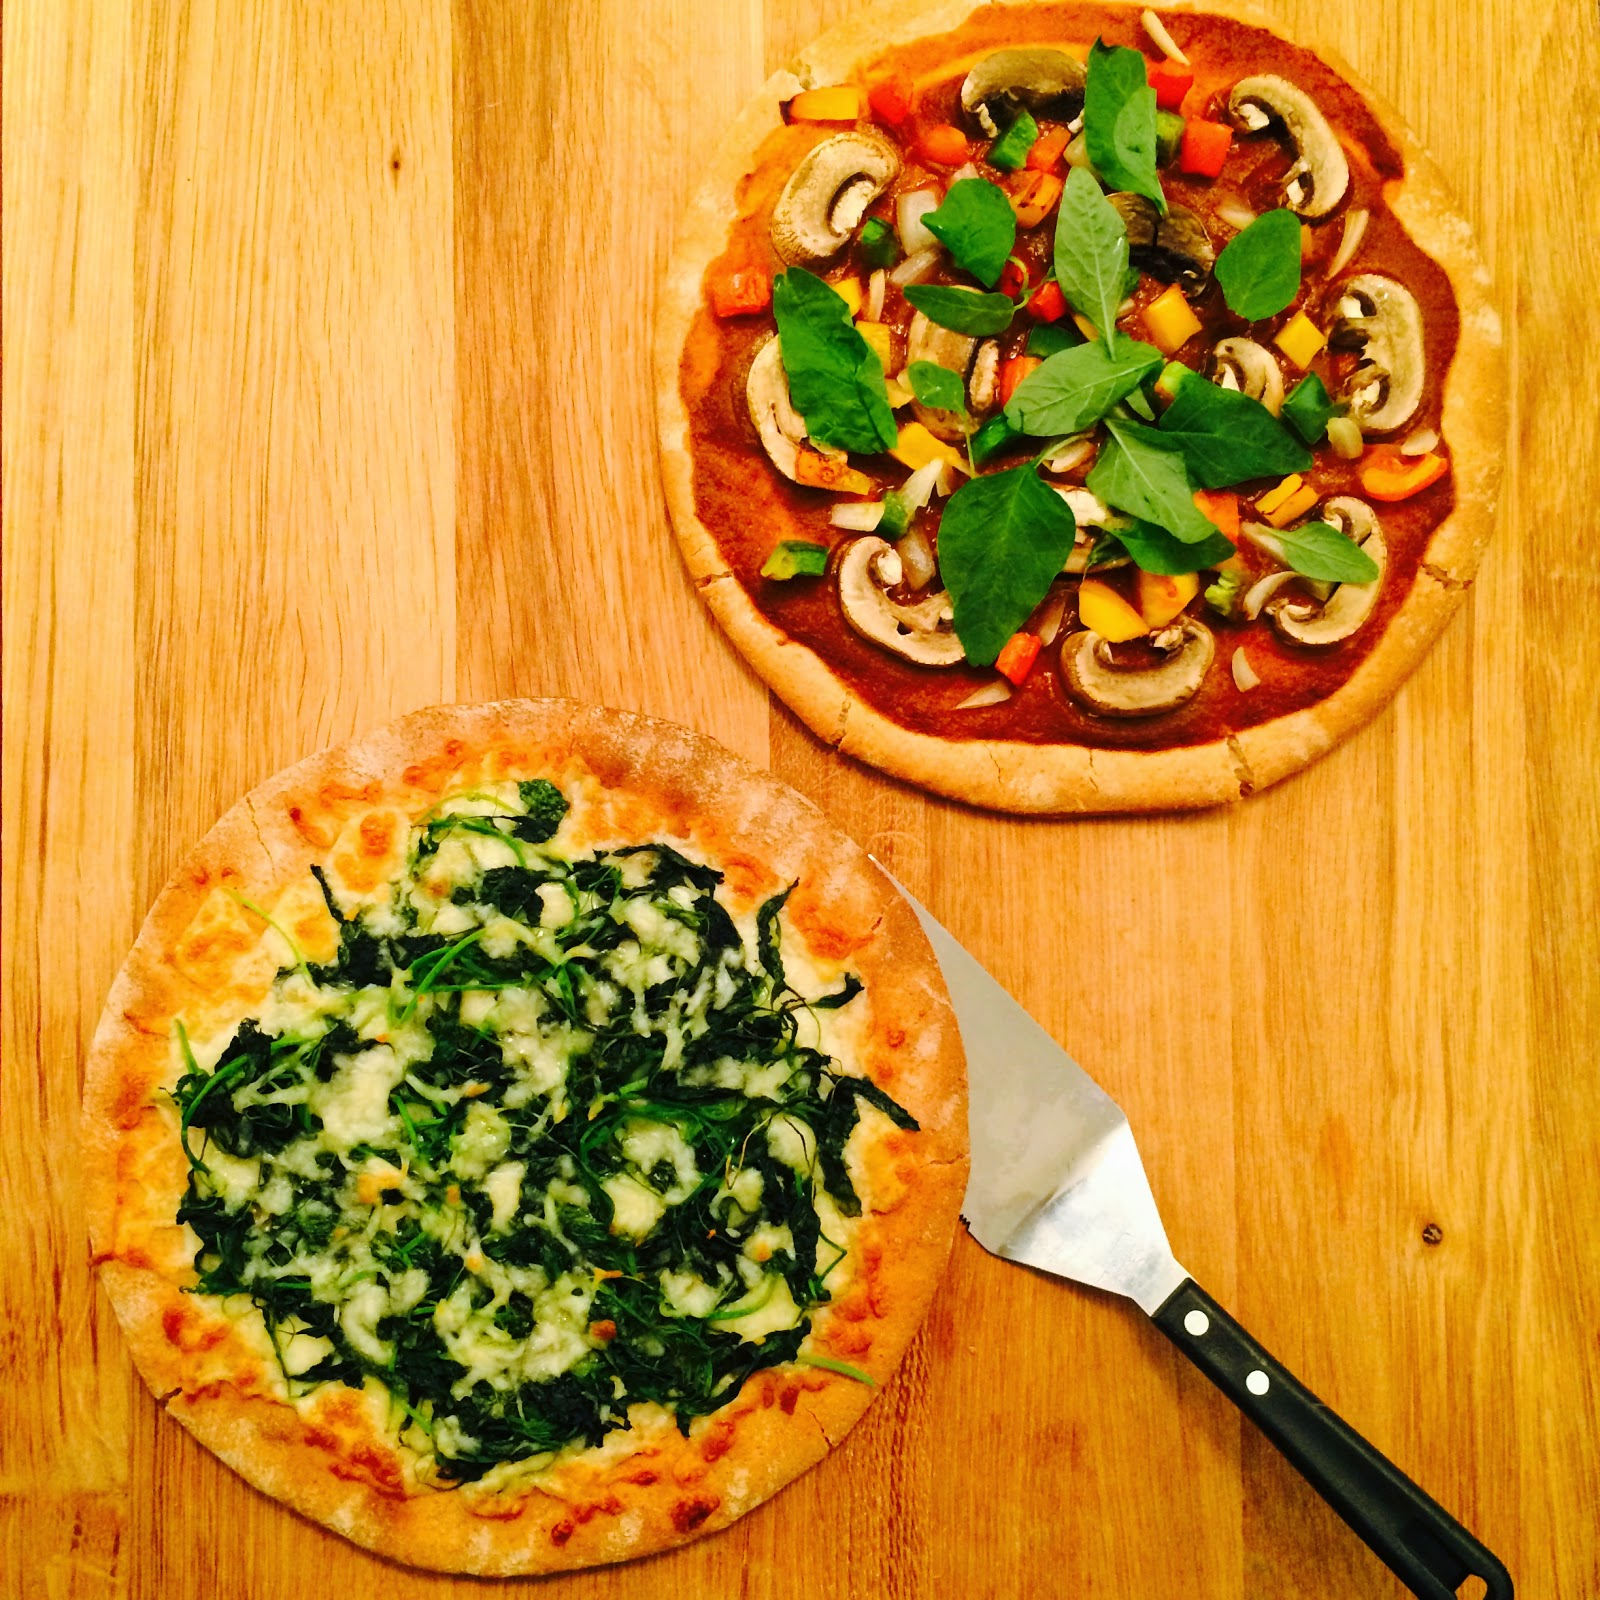 Homemade Healthy Spinach and Cheese Pizza and Tomato and Mushroom Pizza Recipe